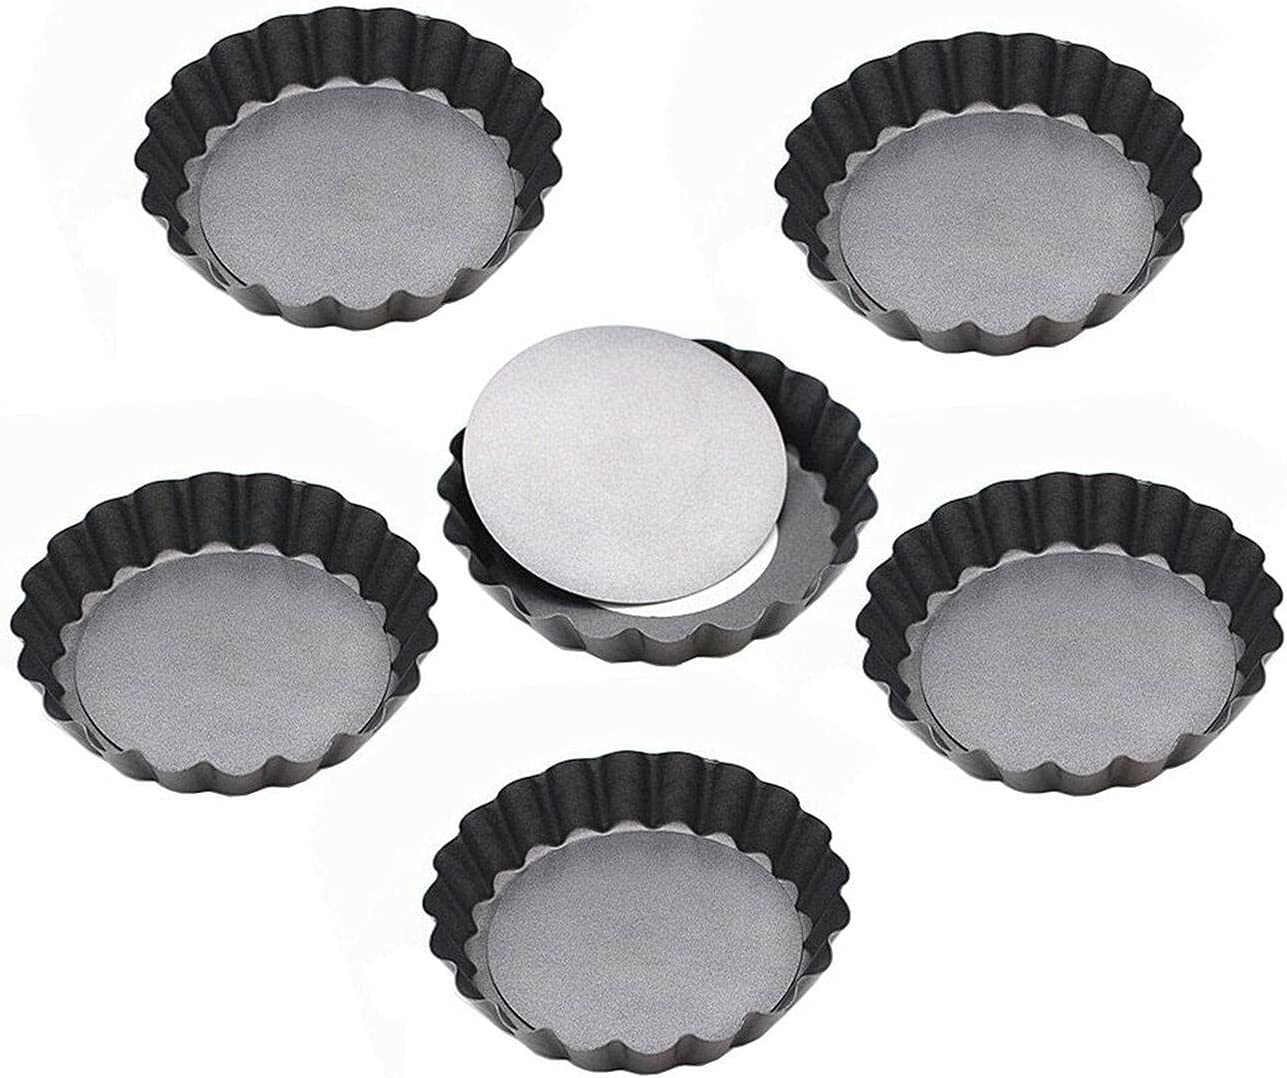 New popularity 3.9 Inch Removable Bottom Quiche Large discharge sale Stick Pans Mini Tart Non